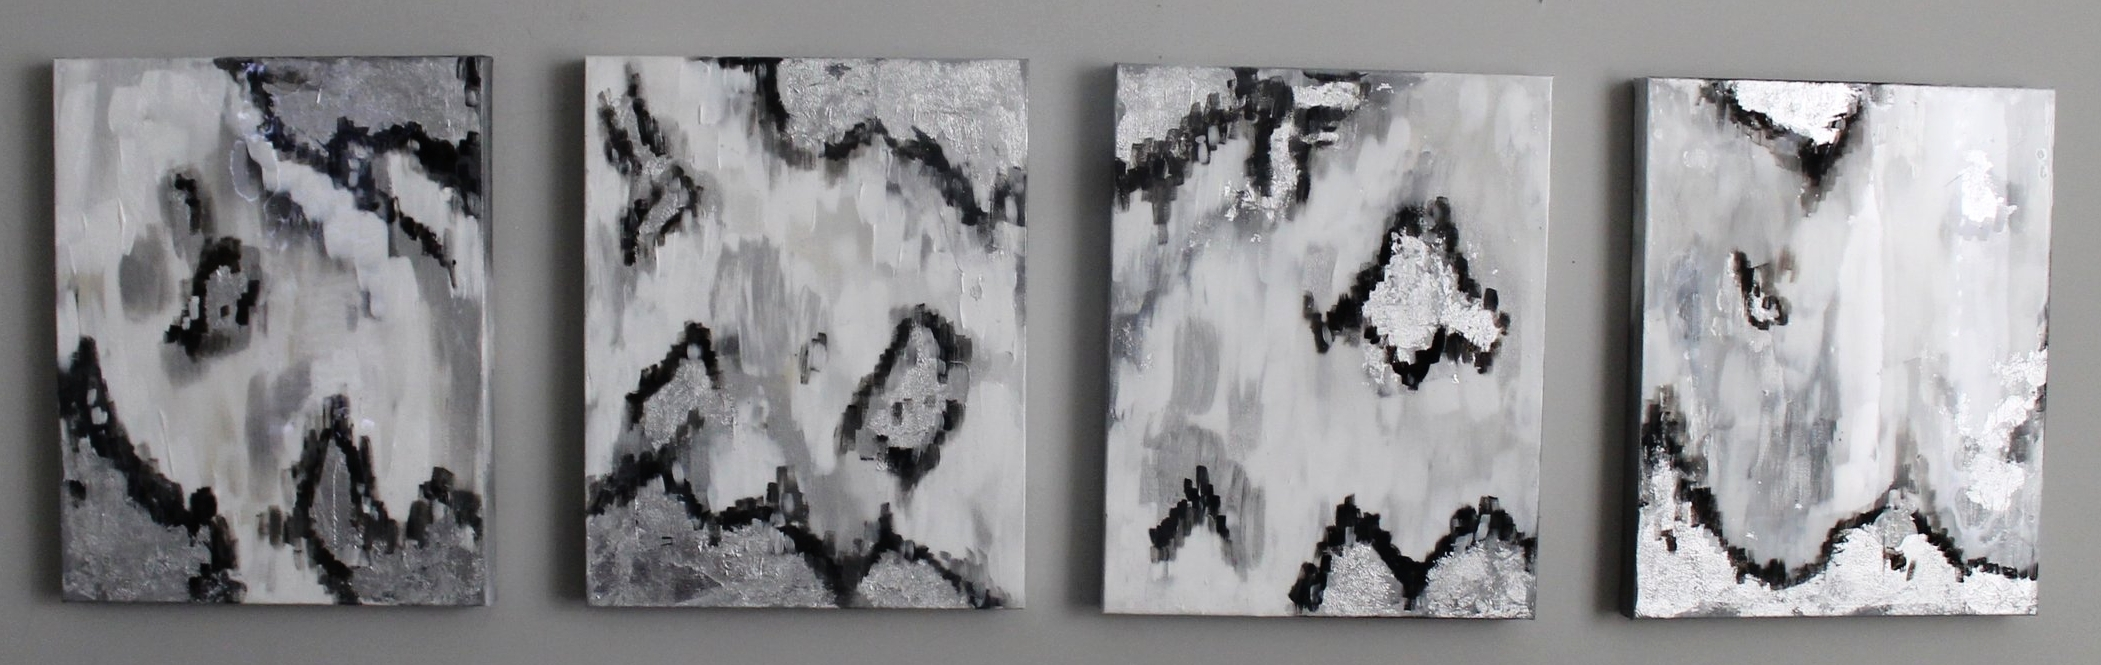 "SOLD | Artic Blast | set of 4 20"" x 16"" on soft canvas"